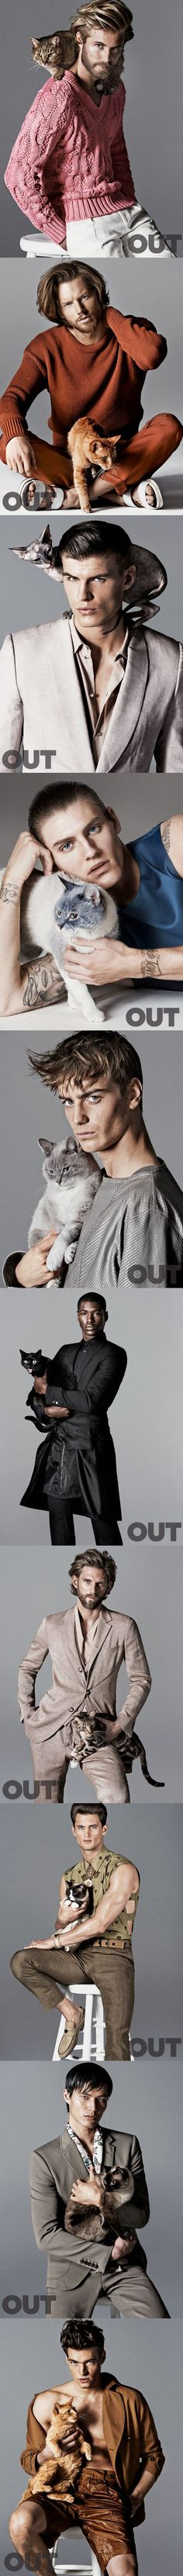 Hot Men with Cats | Giampaolo Sgura